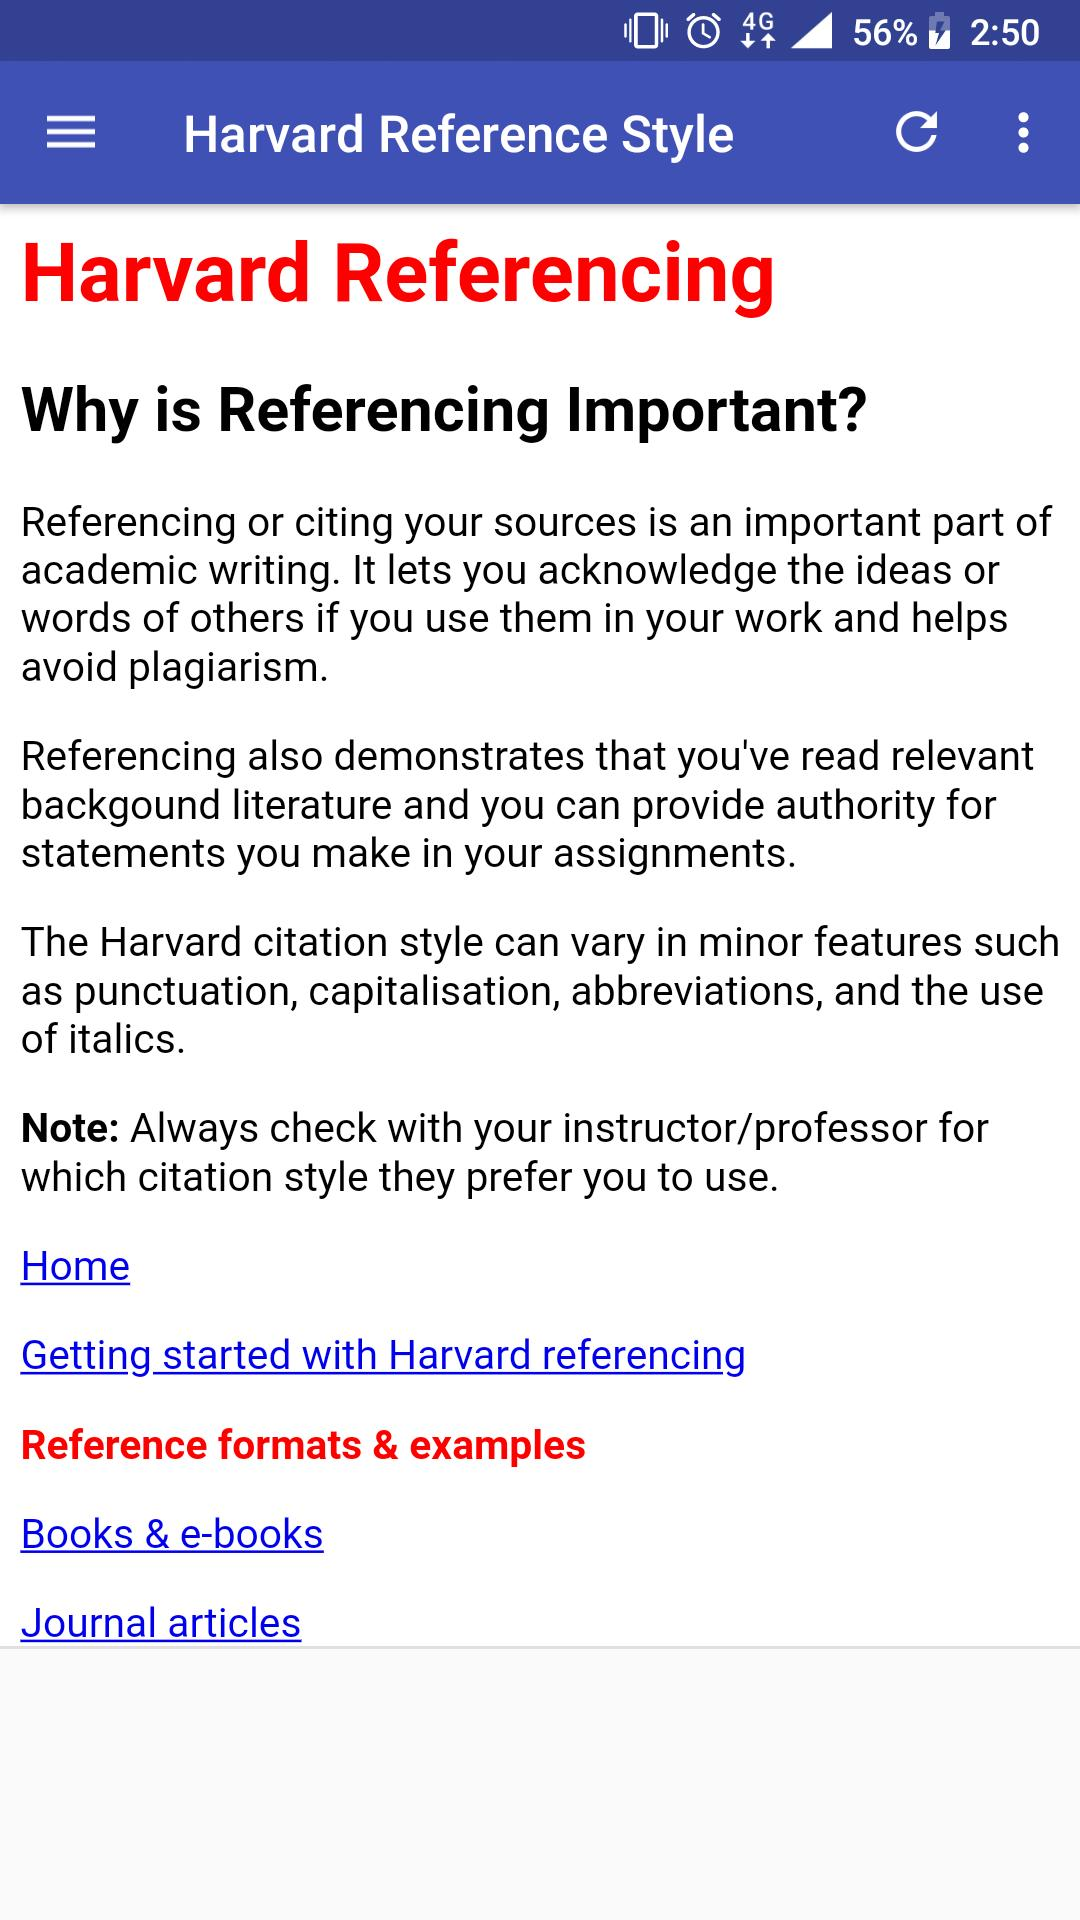 Harvard Reference Style Guide For Android Apk Download